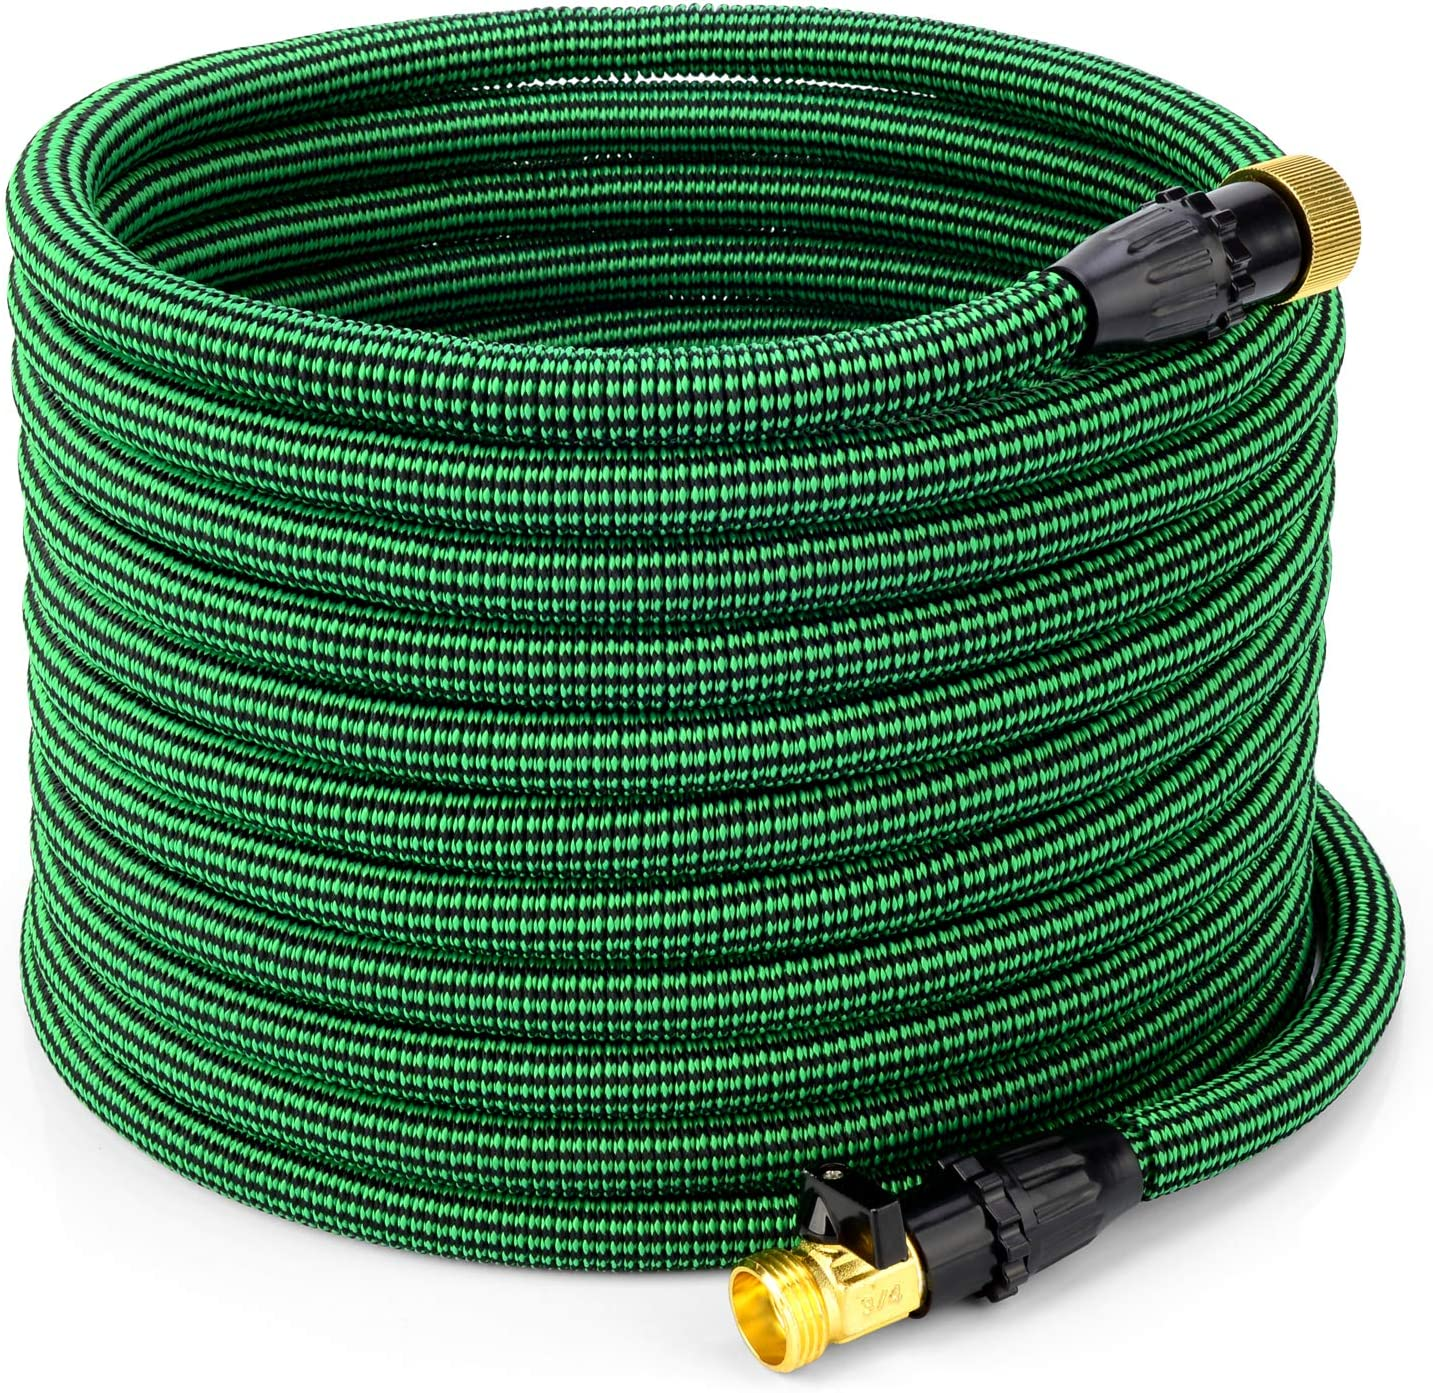 100 ft Garden Hose-Lightweight Expandable Water Hose,Extra Strength with 3/4 Inch Solid Brass Fittings,- Flexible Expanding Hose with Storage Bag,Leak Resistant Pocket Water Hose